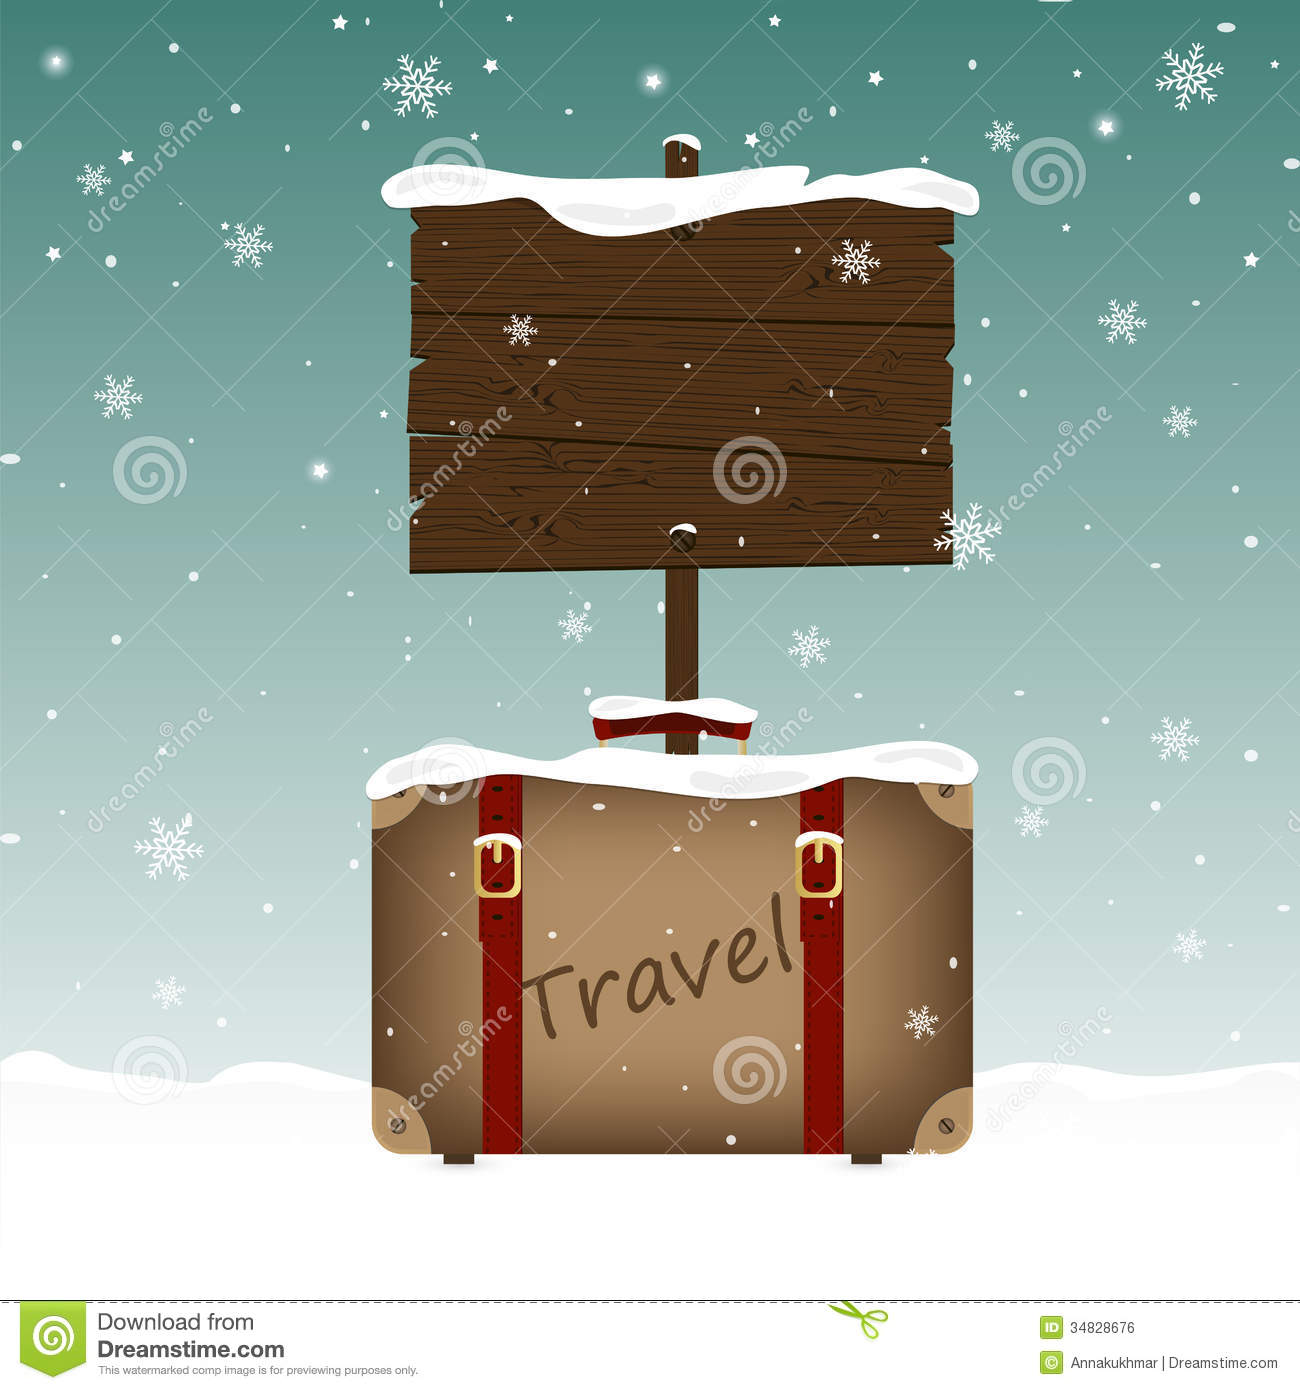 Easy Year To Travel On Christmas: Travel Suitcase And A Wooden Signboard In Snow Stock